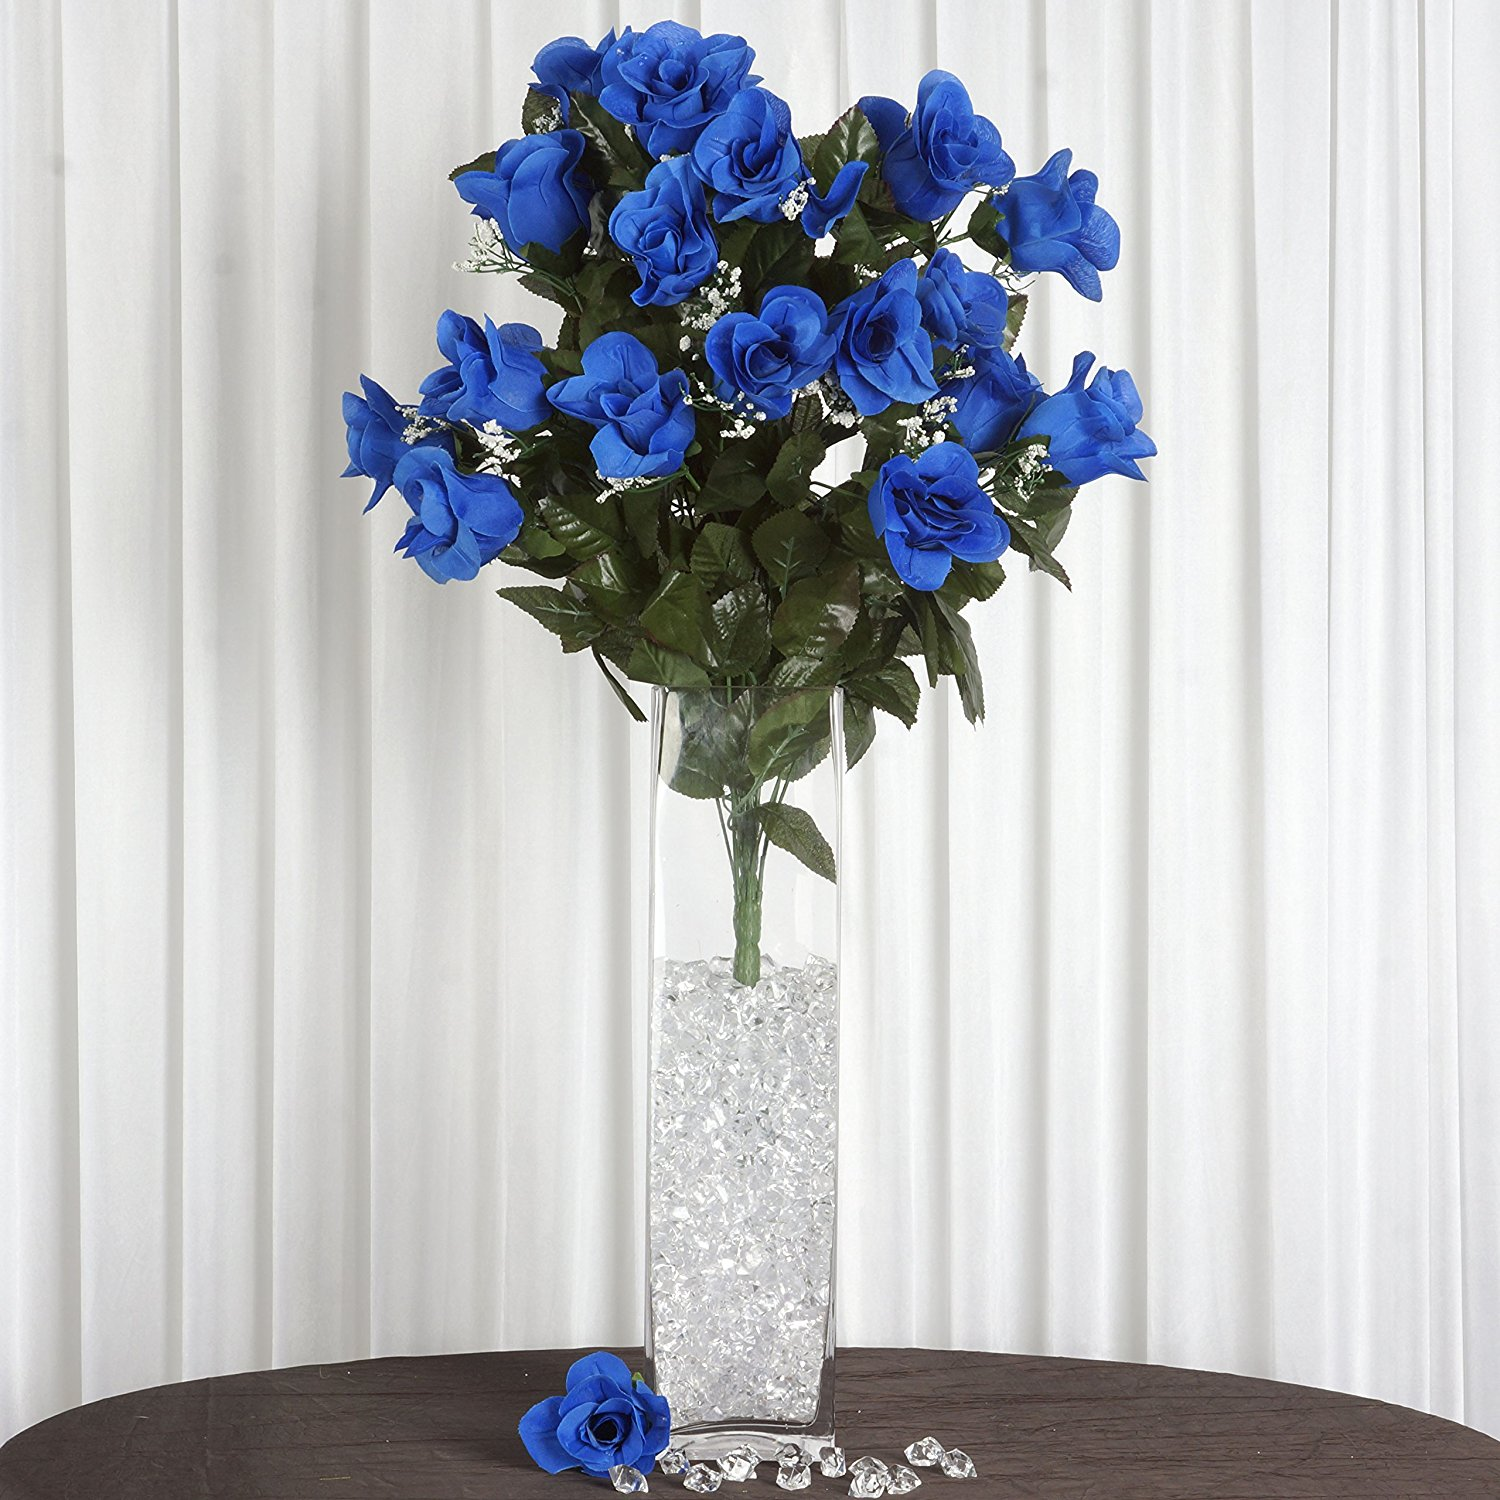 Cheap Royal Silk Flowers Find Royal Silk Flowers Deals On Line At